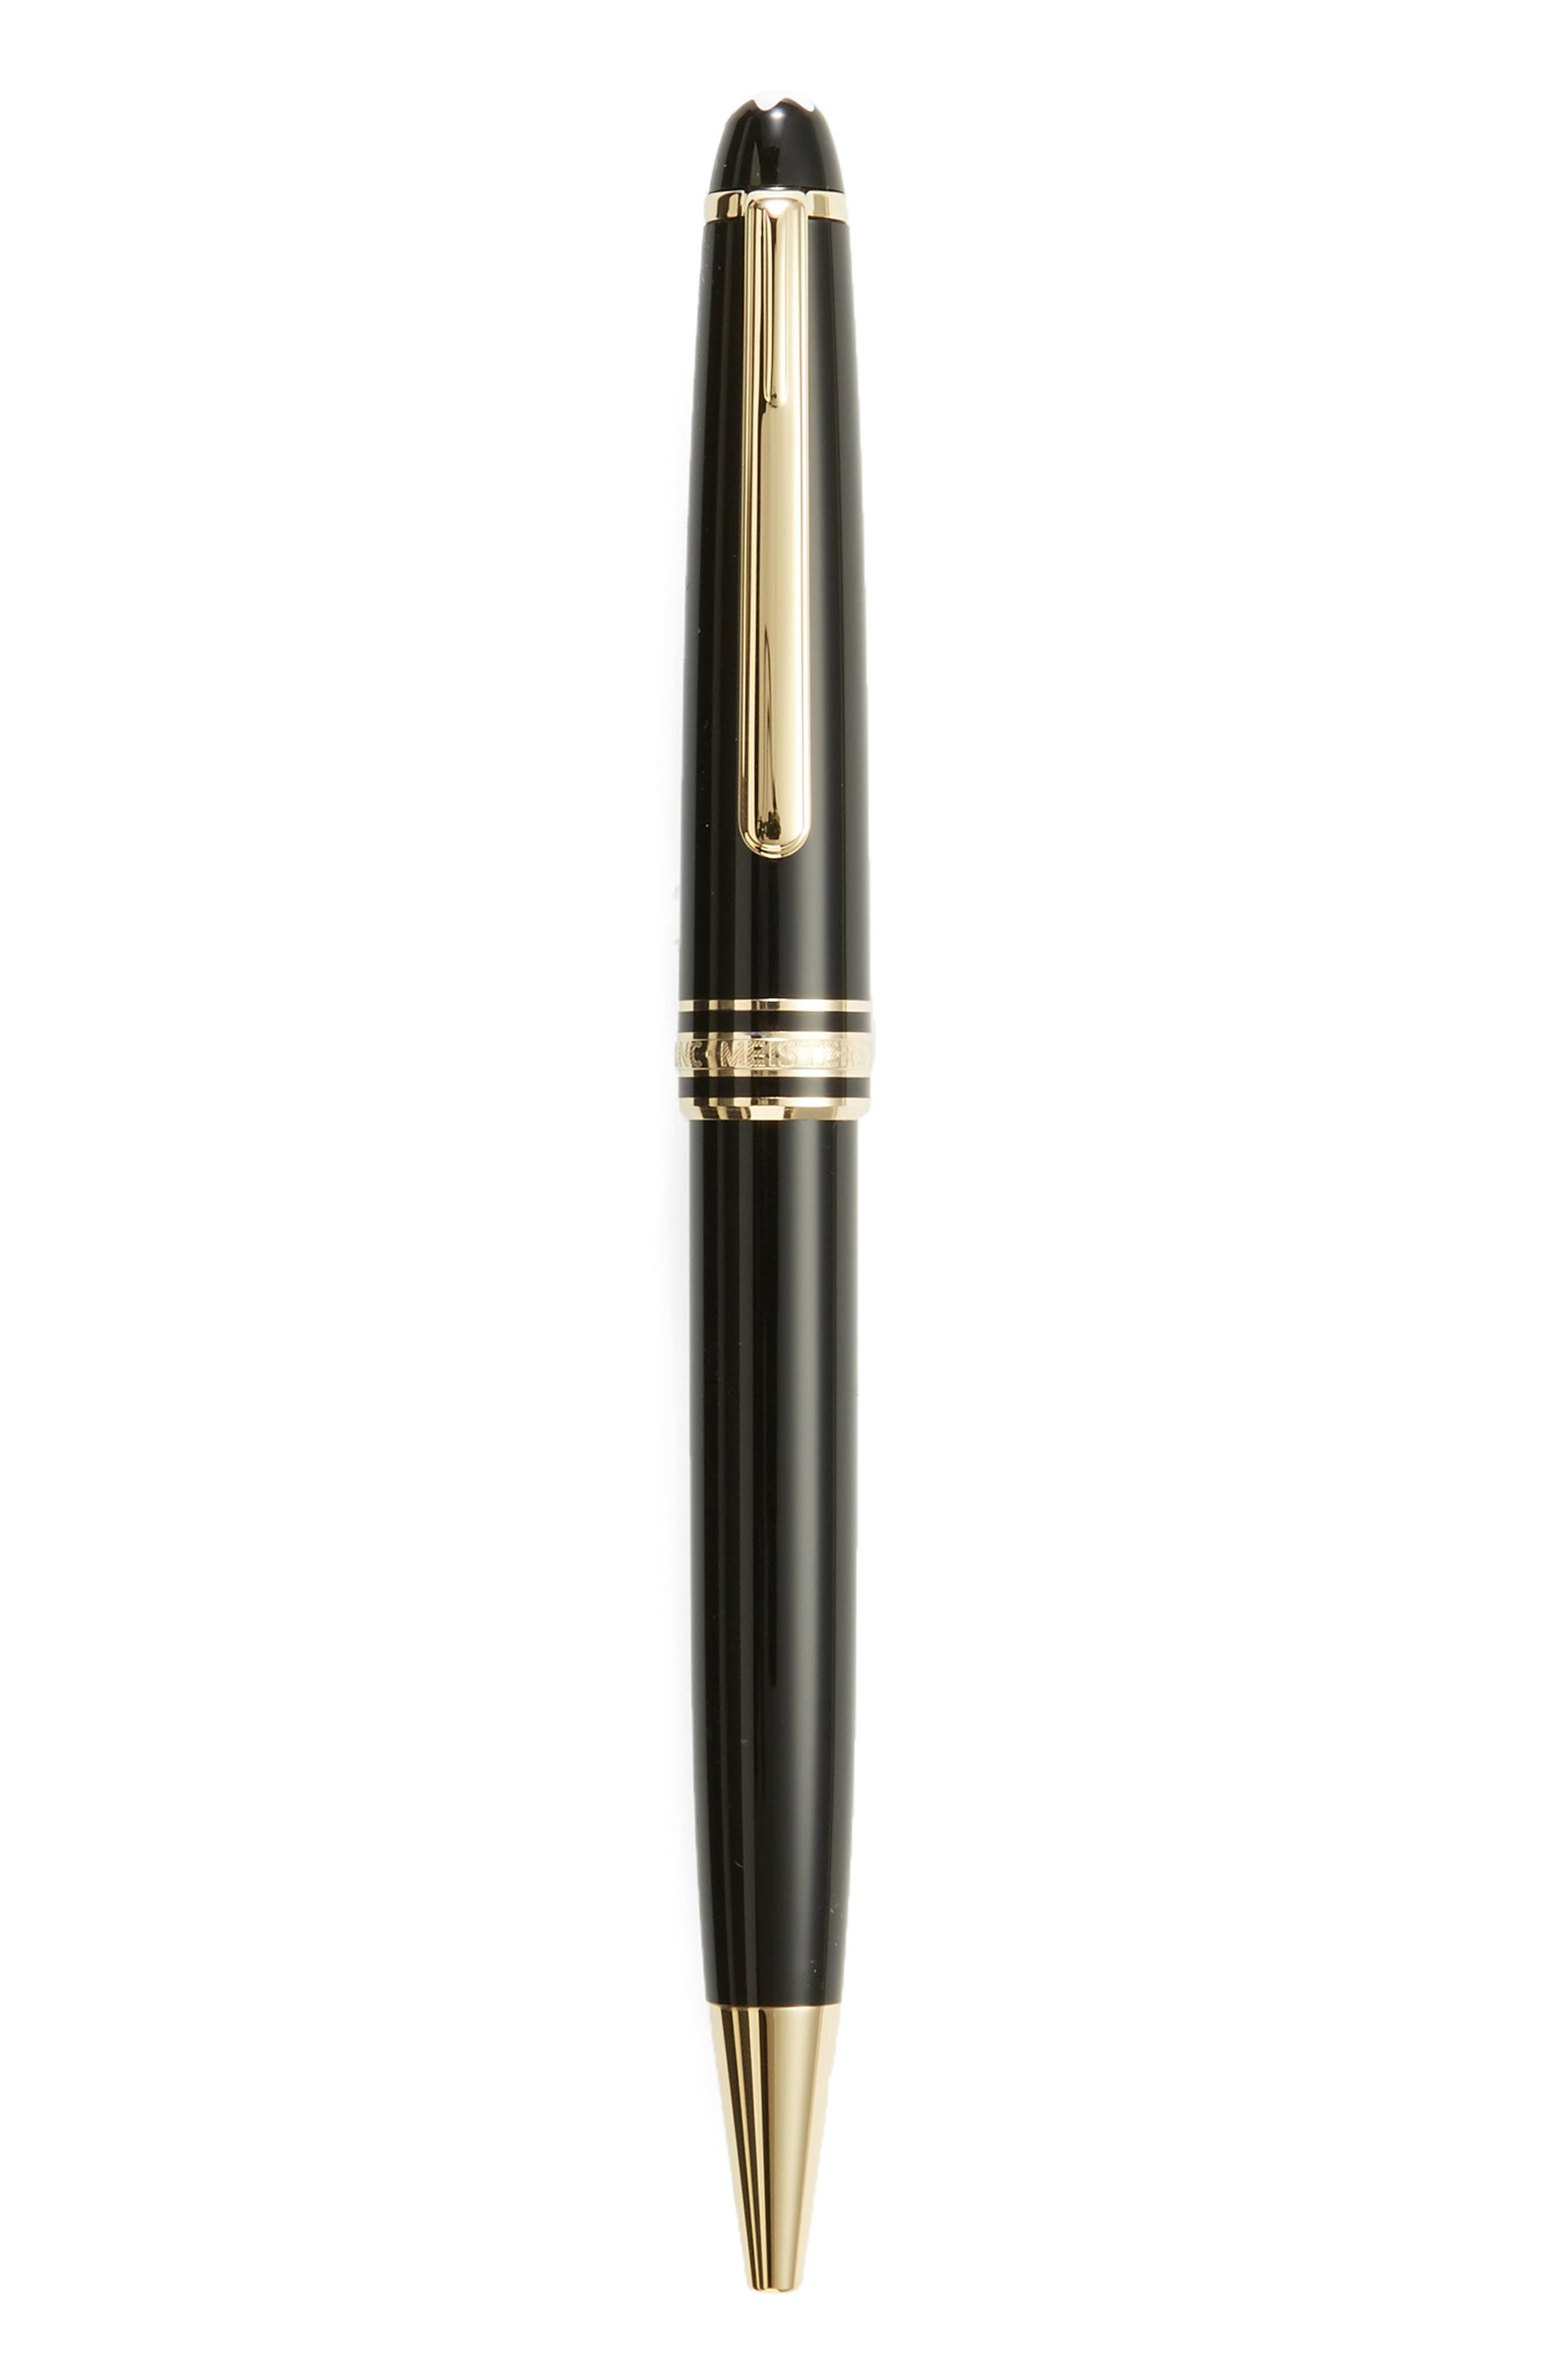 Alternate Image 1 Selected - MONTBLANC Meisterstück Gold Coated Classique Ballpoint Pen